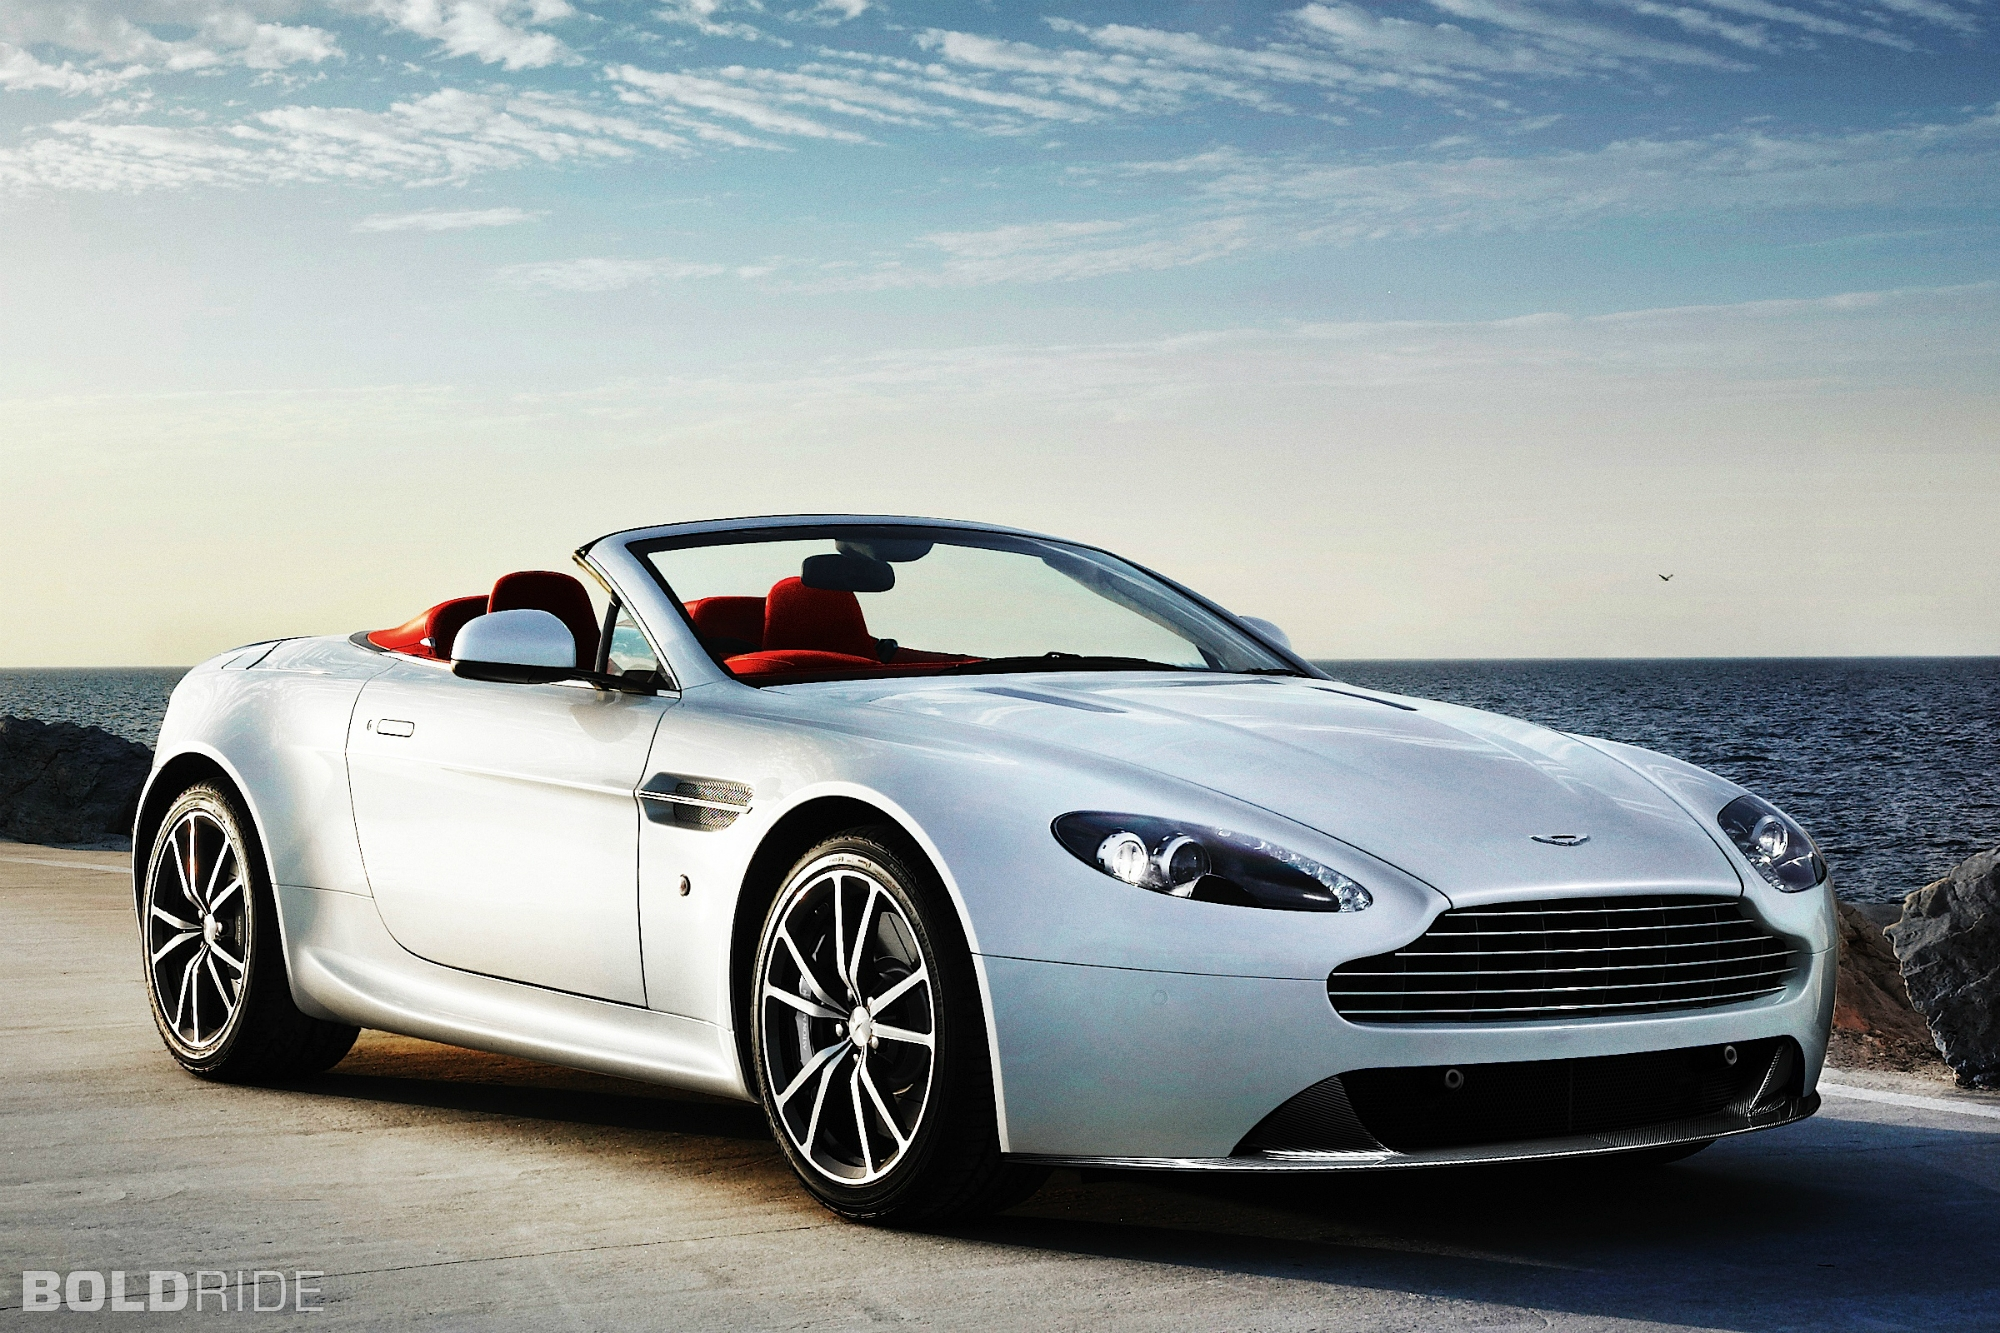 2018 aston martin v8 vantage roadster car photos catalog 2018. Black Bedroom Furniture Sets. Home Design Ideas